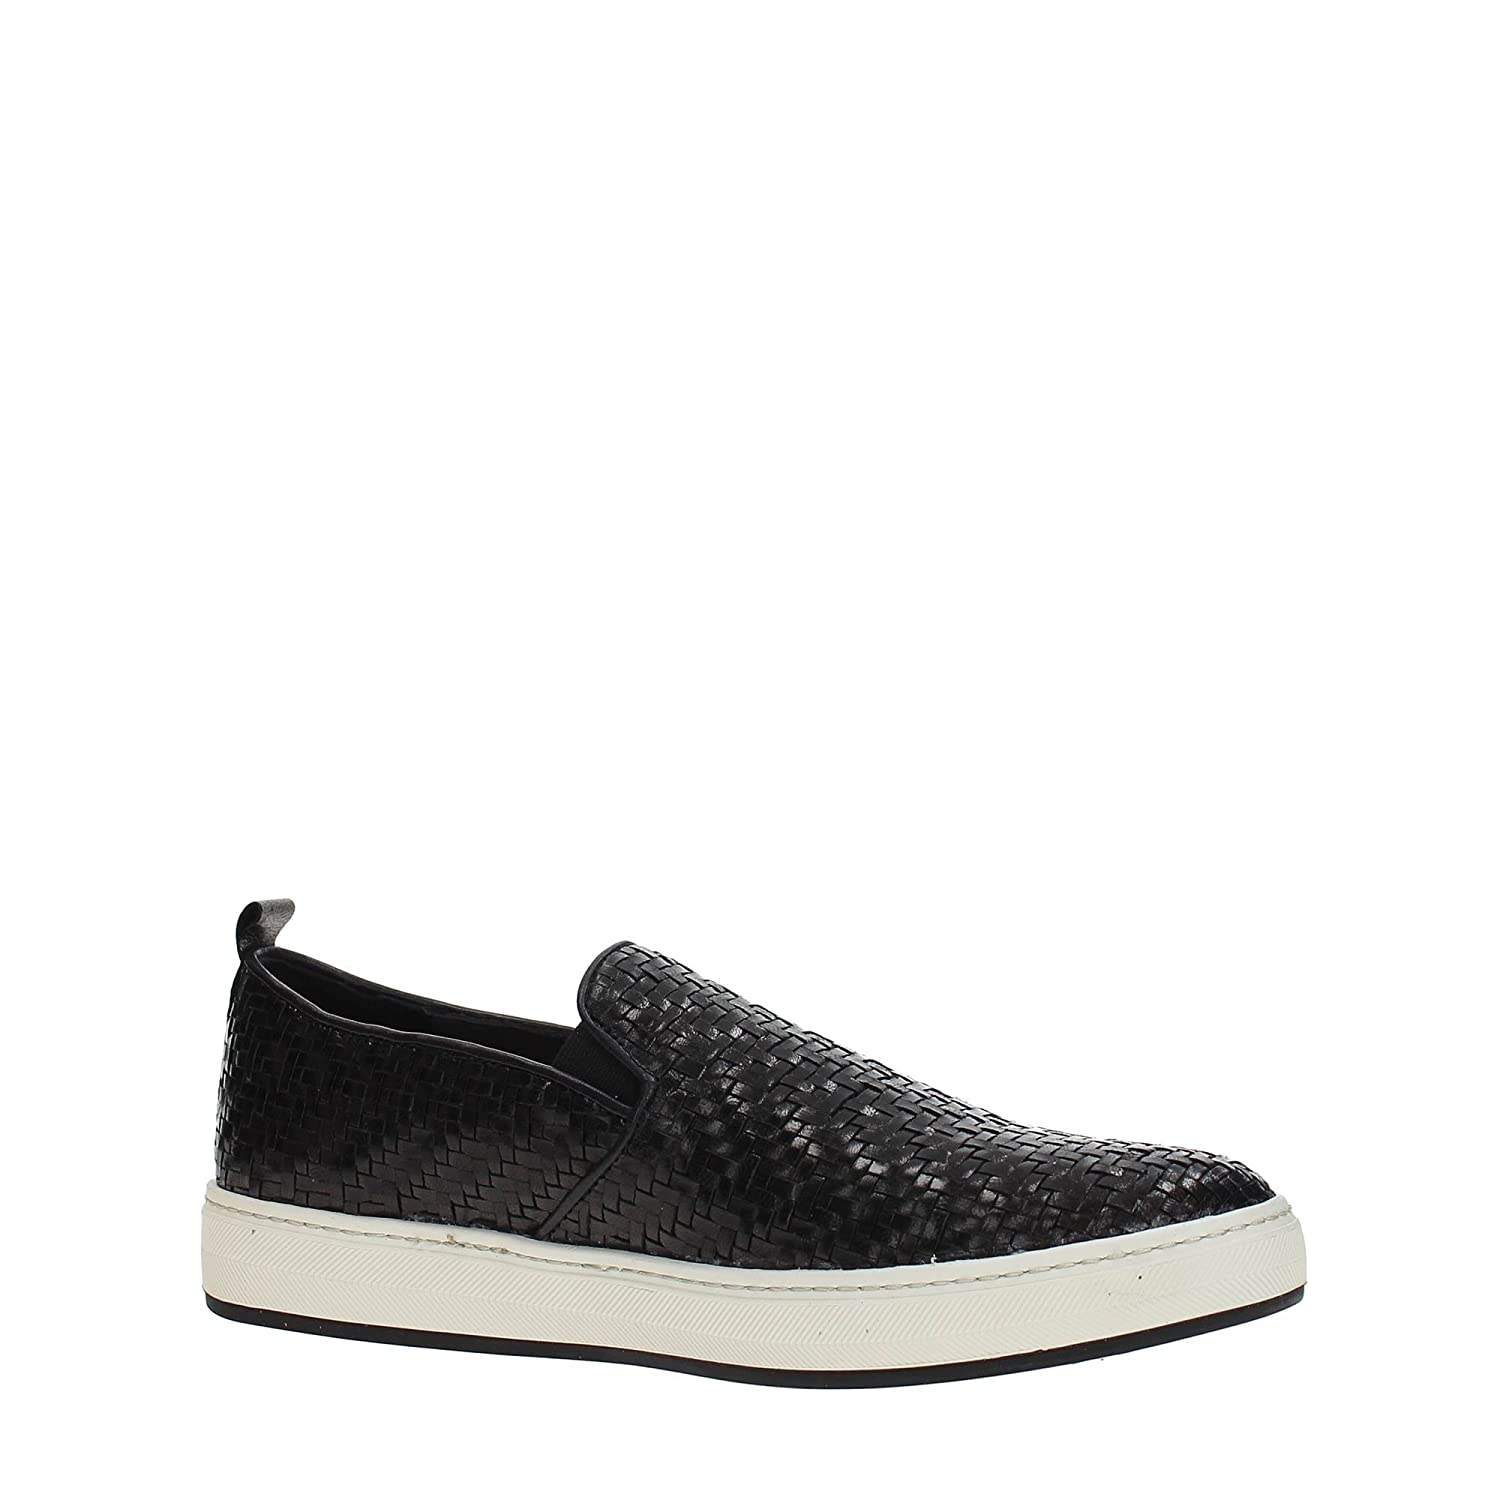 Frau Verona 28Q6 Slip On Herren Black 44 t9yY2oF